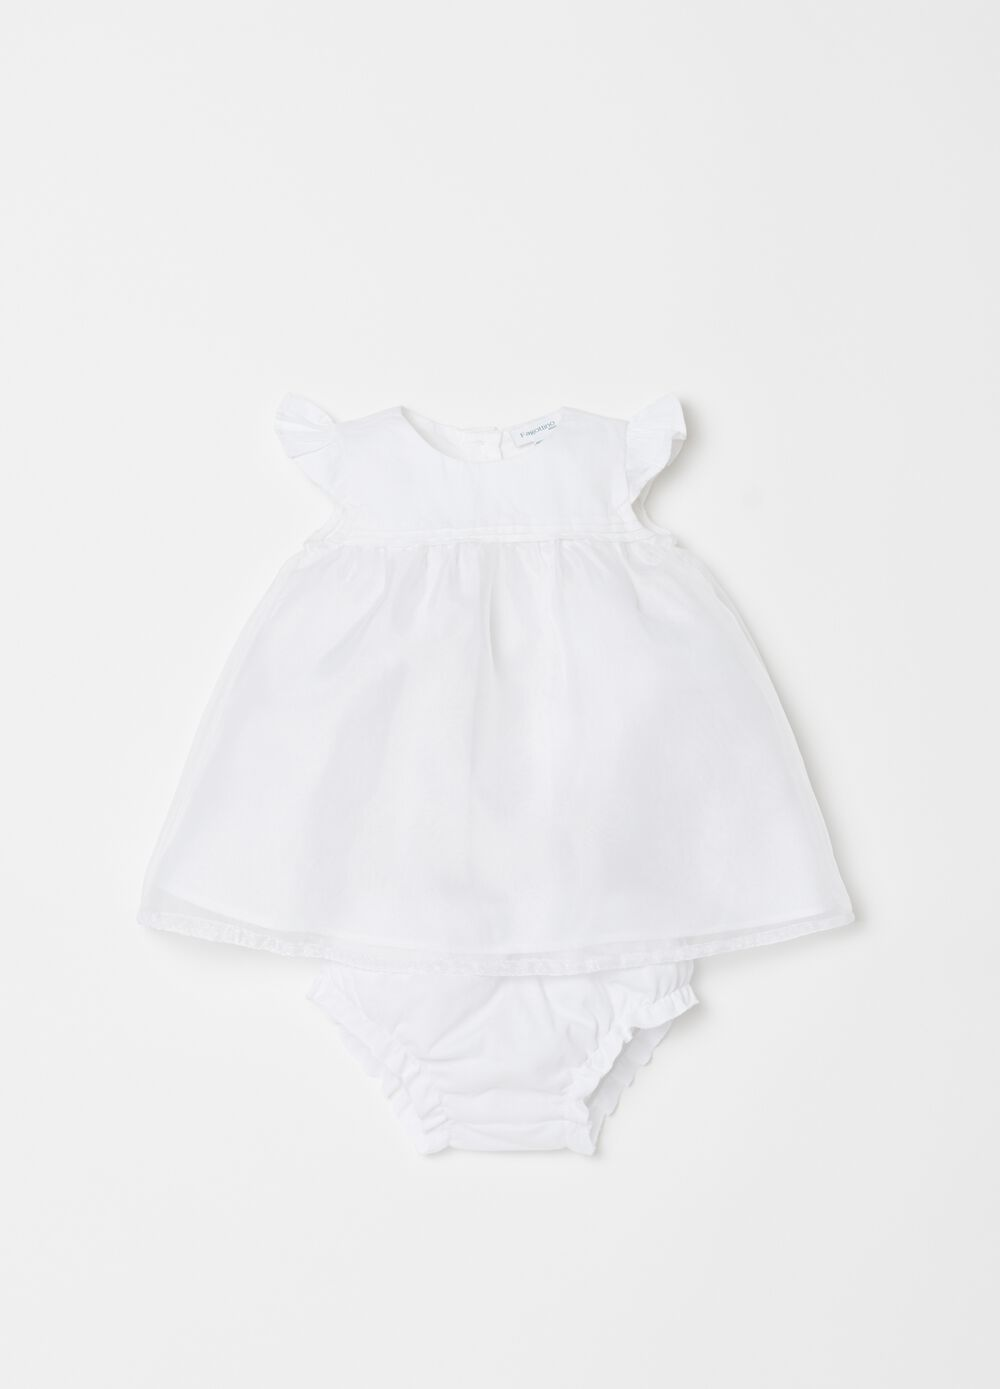 Dress and briefs set with frills